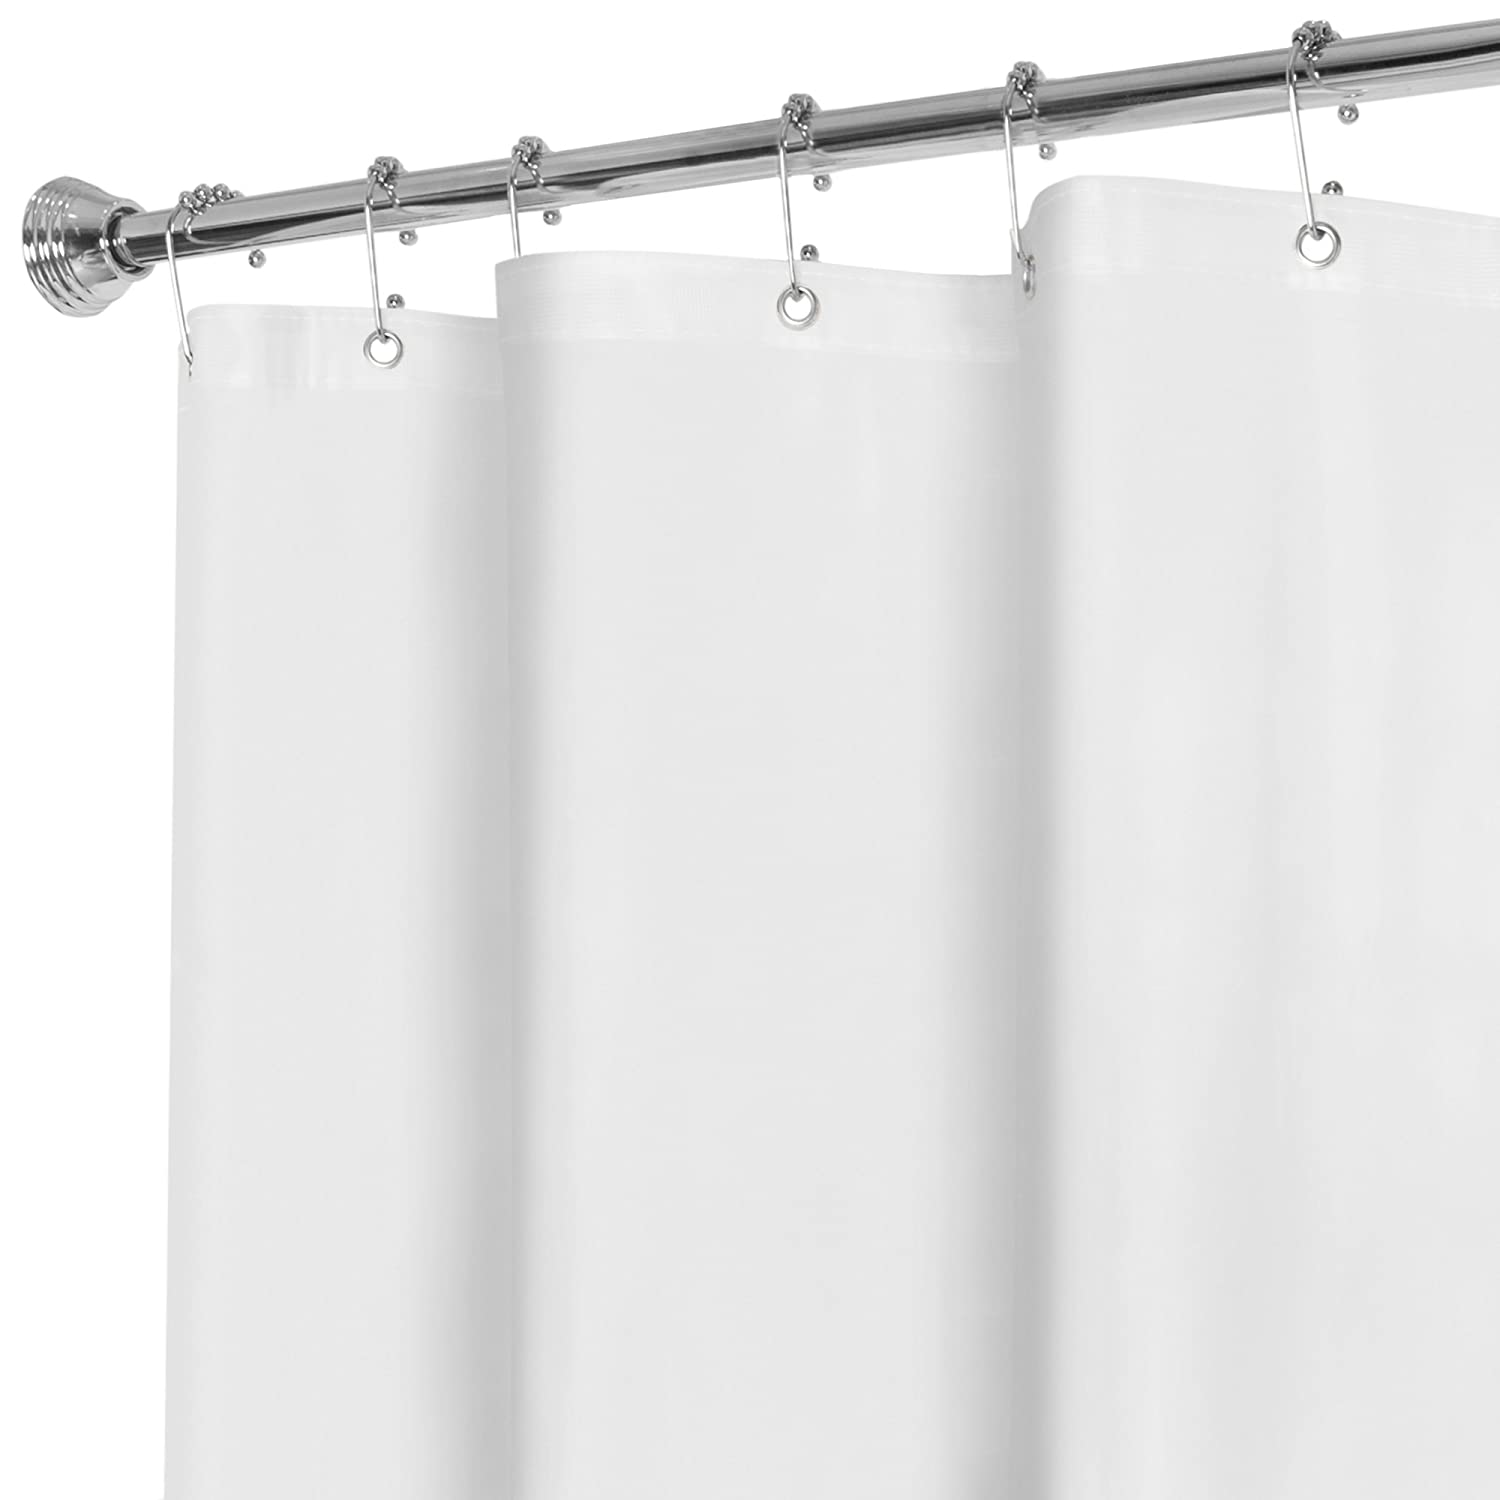 Maytex No More Mildew Super Heavy Weight Premium 10 Gauge Shower Liner or Curtain with Rust Proof Metal Grommets, White Maytex Mills 71130-WHT